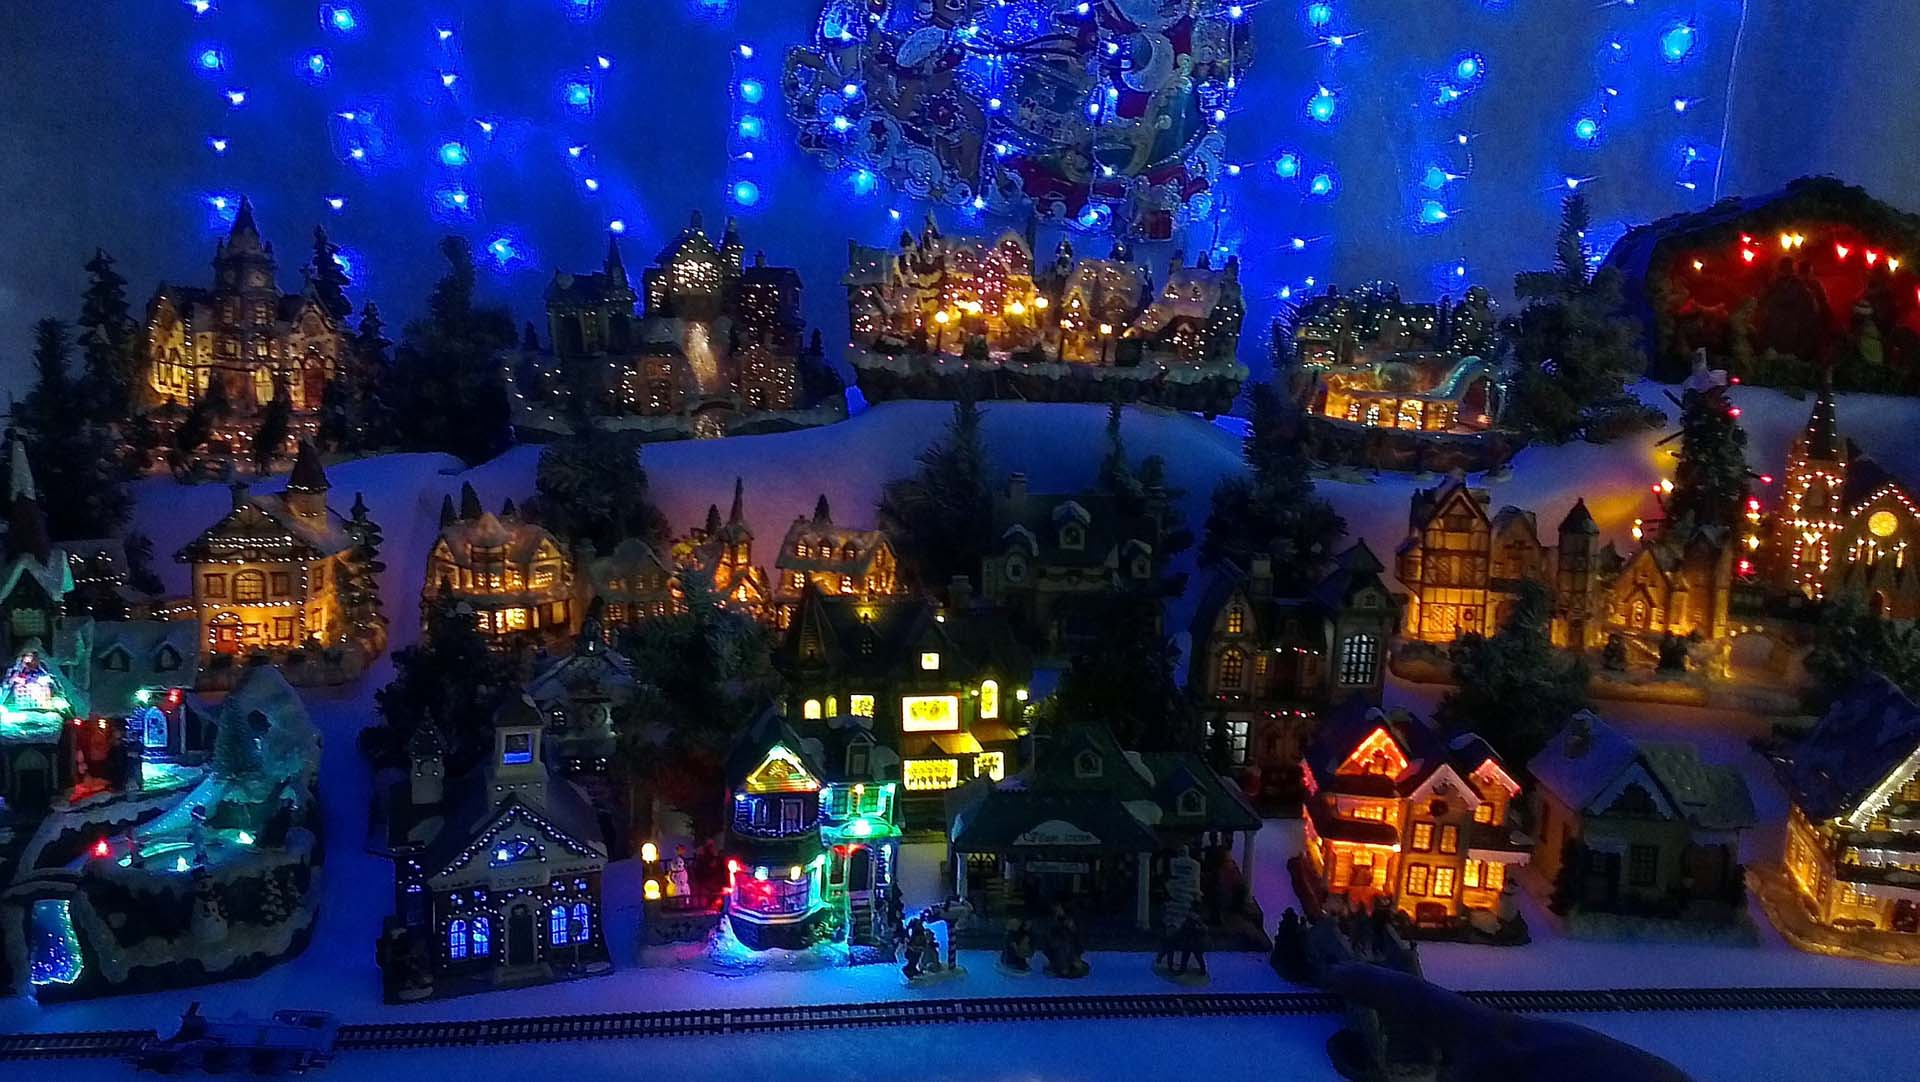 Christmas Village Background Wallpapers9 1920x1082